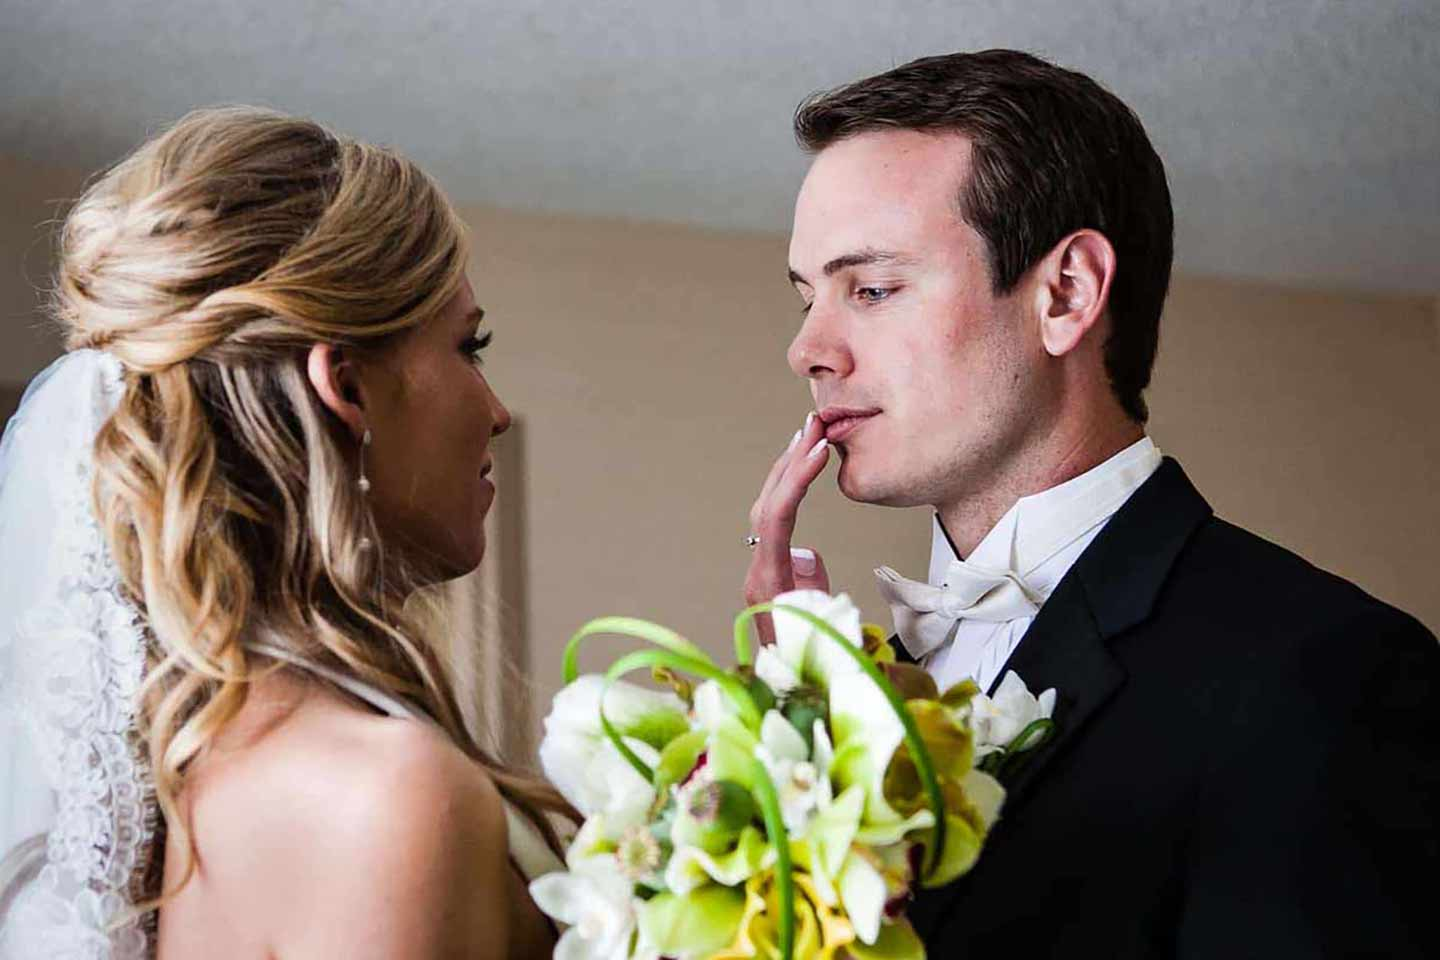 bride touching her groom's lips in an emotional moment during their First Look portraits on their wedding day